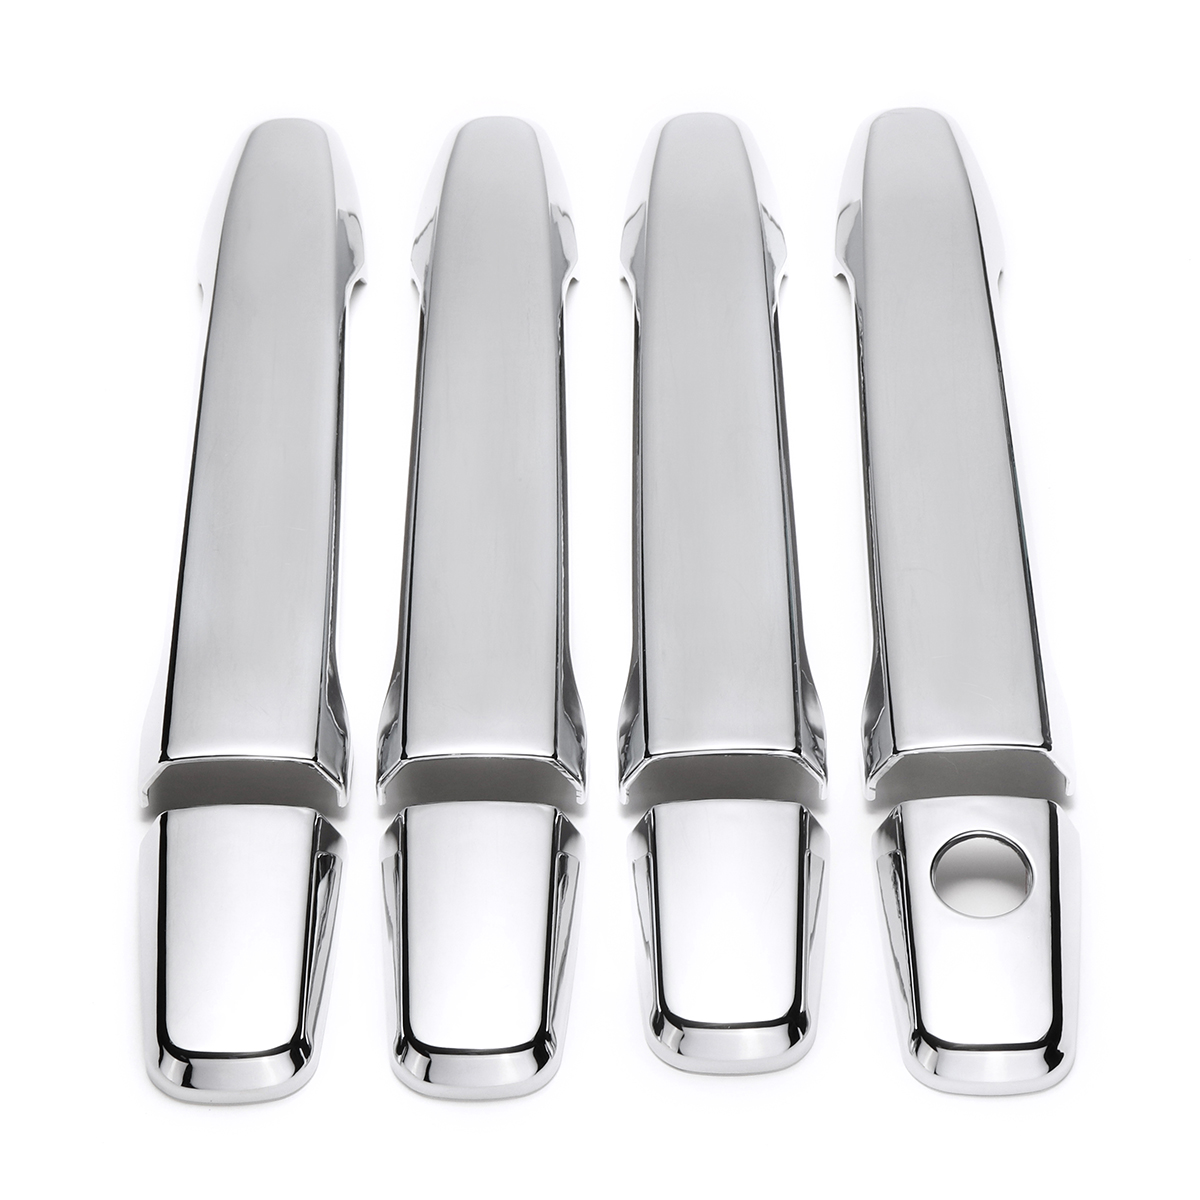 8pcs Set ABS Chrome 4 Door Handles Covers For Mitsubishi Outland